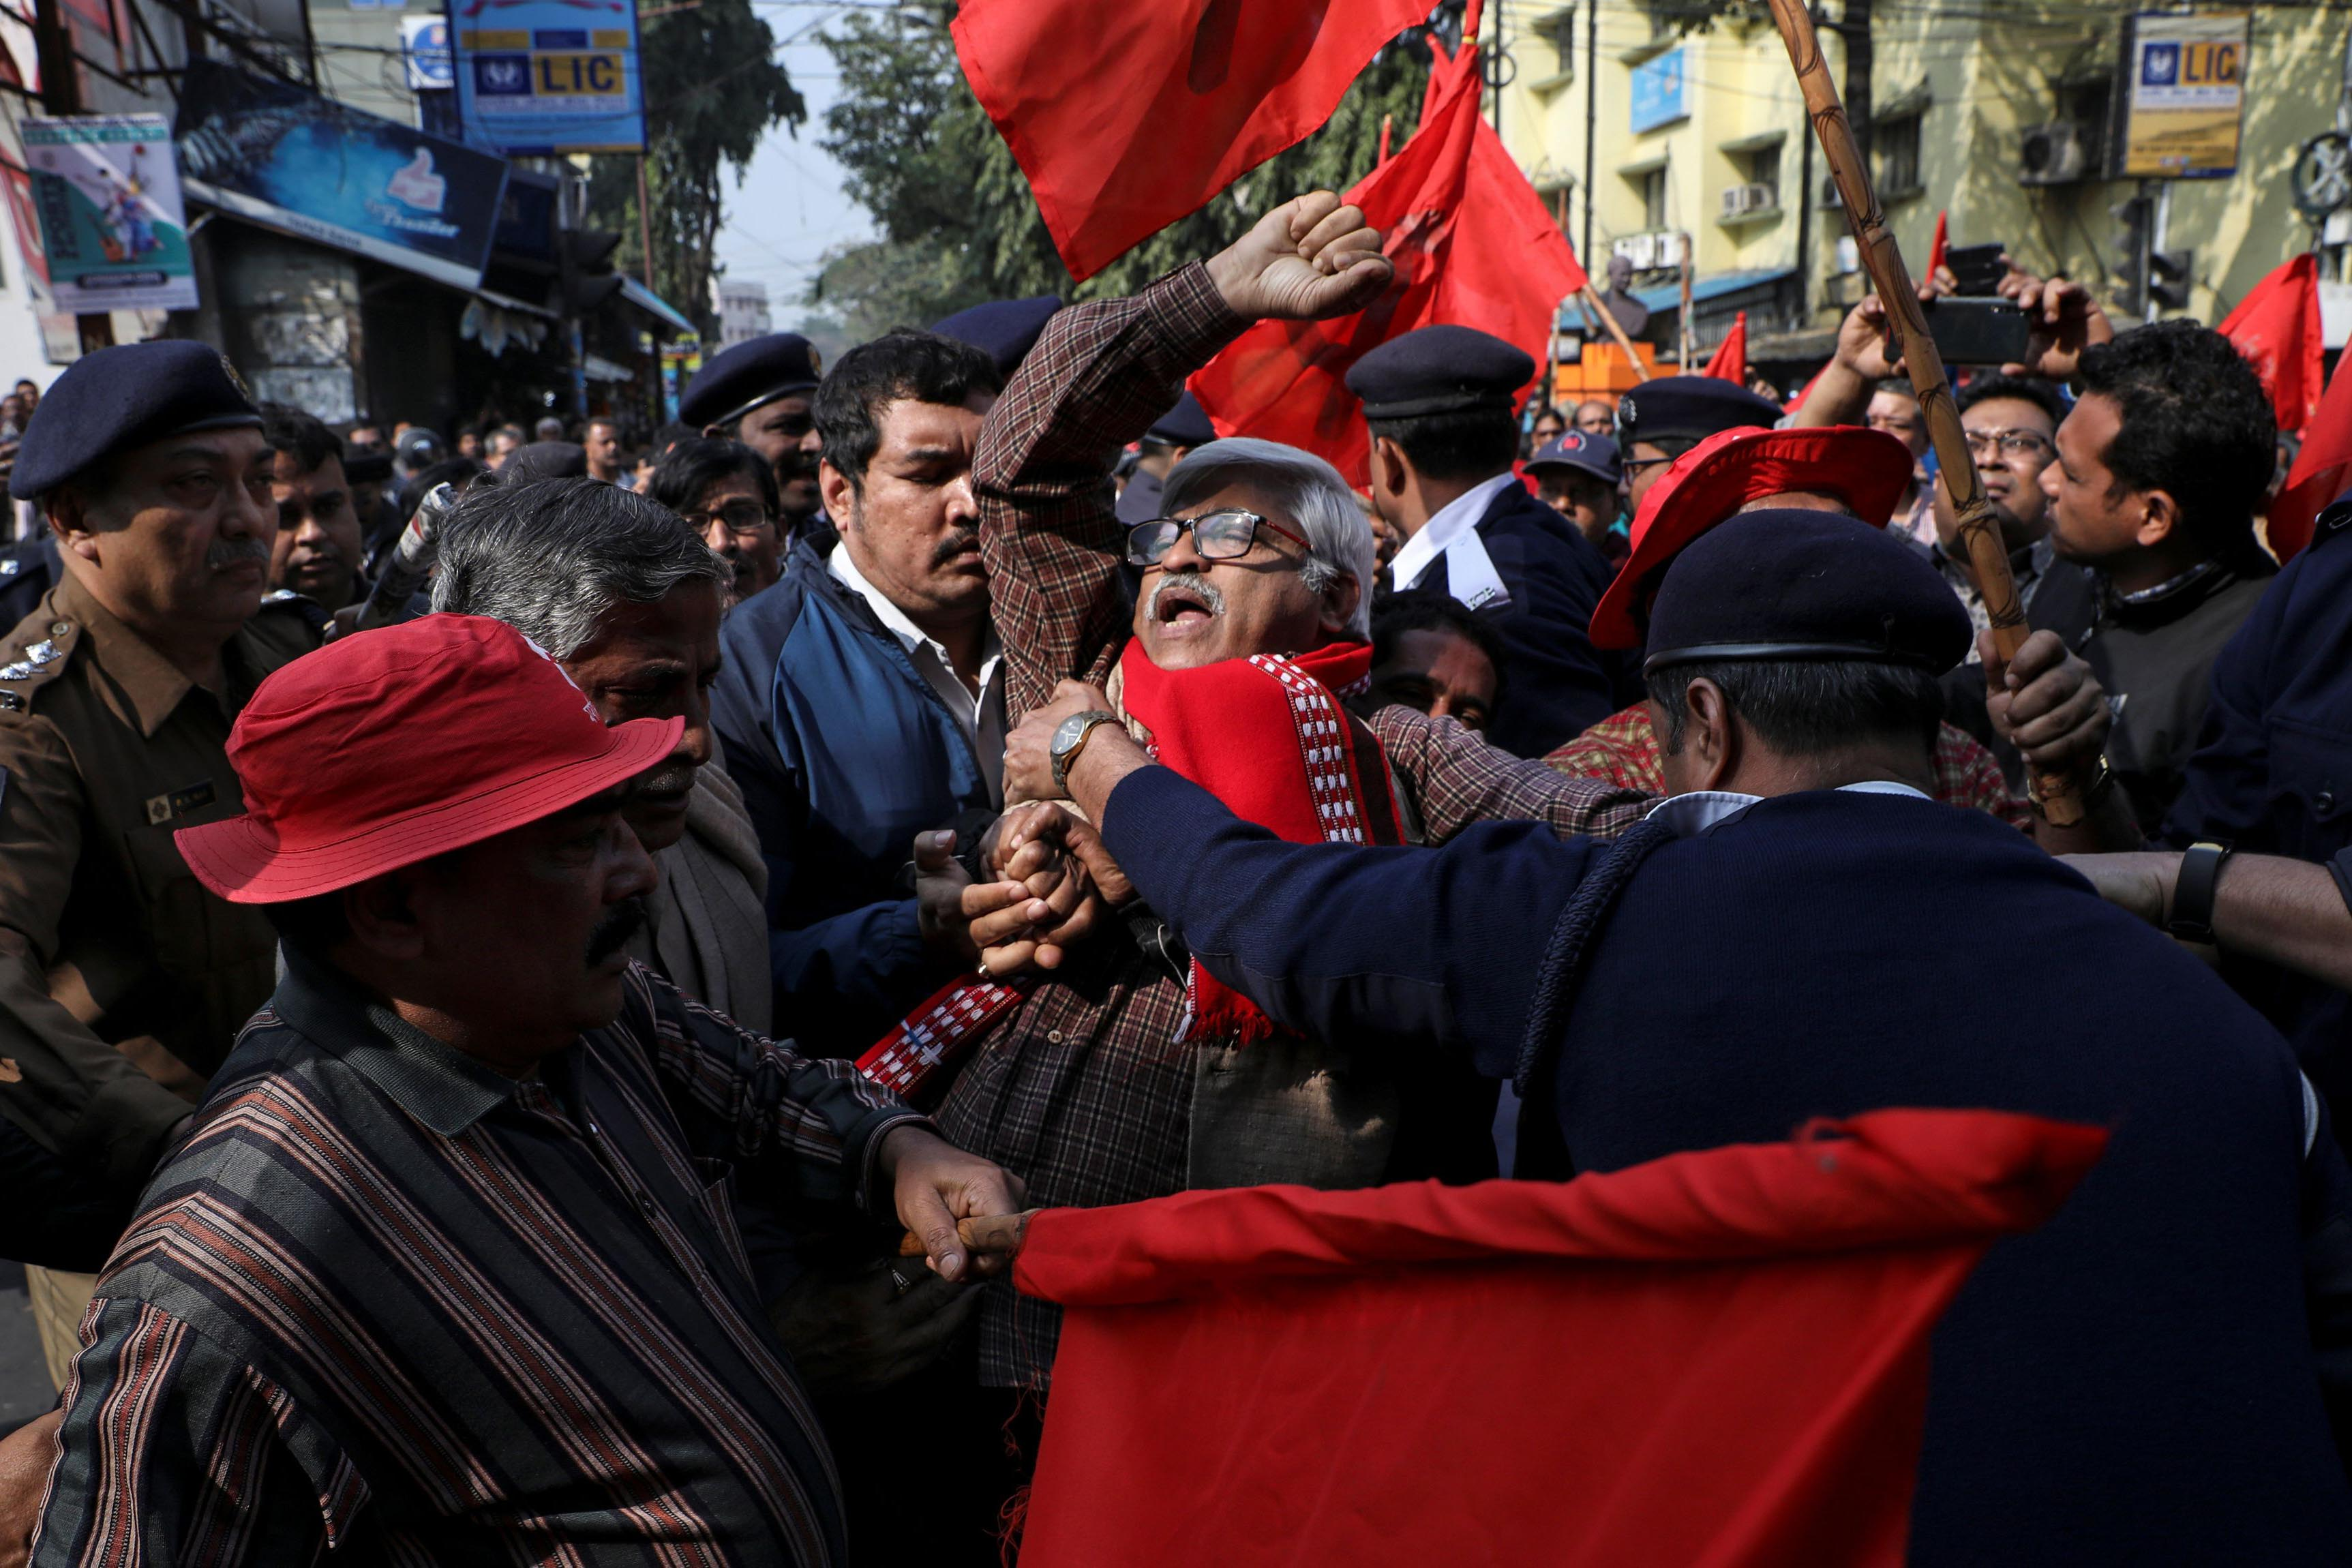 8 January 2020: A supporter of the Communist Party of India (Marxist) being detained during a protest against the government in Kolkata, India. (Photograph by Reuters/Rupak De Chowdhuri)